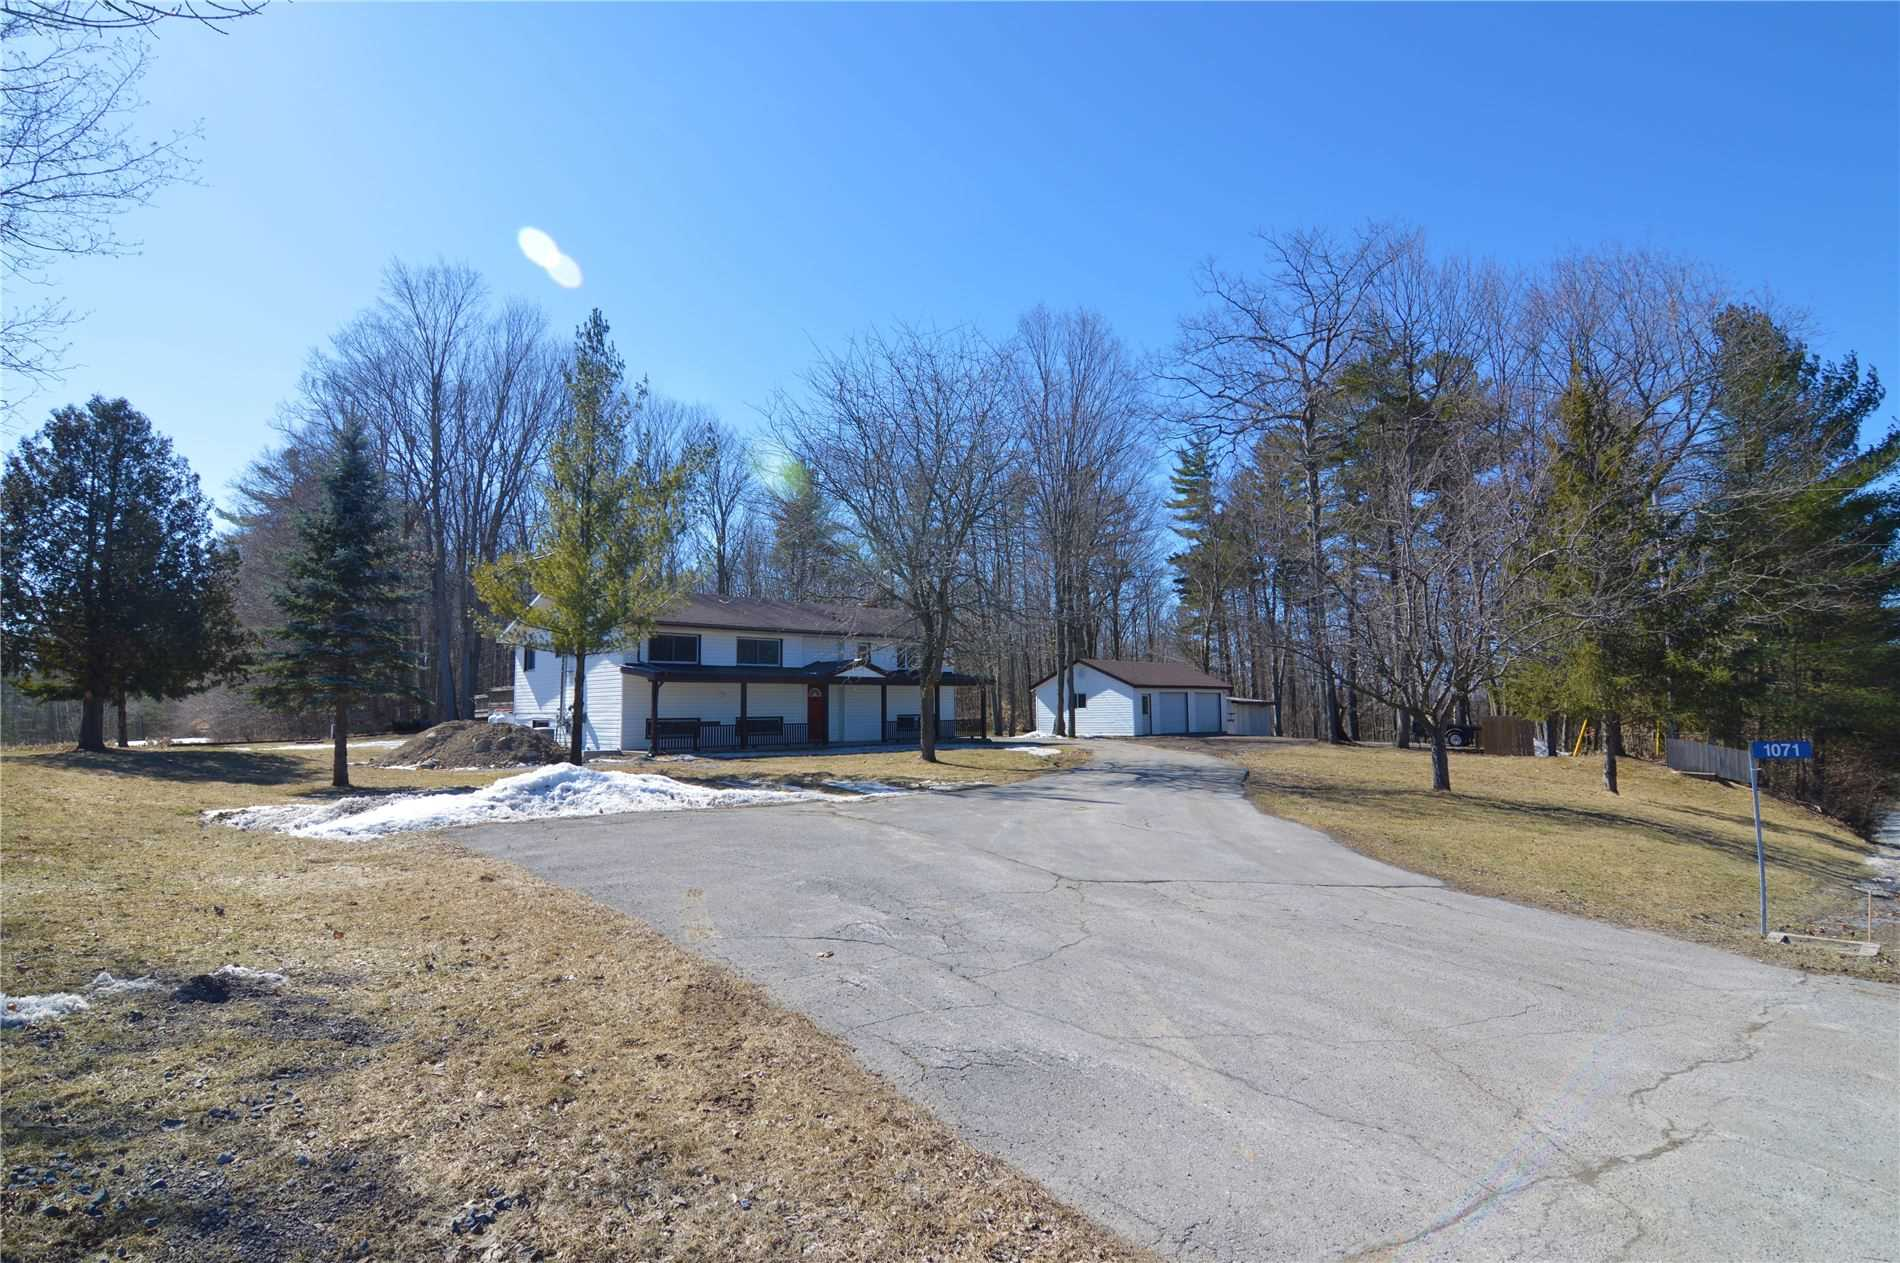 1071 Gunter Settlement Rd, Quinte West, Ontario K8V 5P6, 3 Bedrooms Bedrooms, ,2 BathroomsBathrooms,Detached,For Sale,Gunter Settlement,X5152359